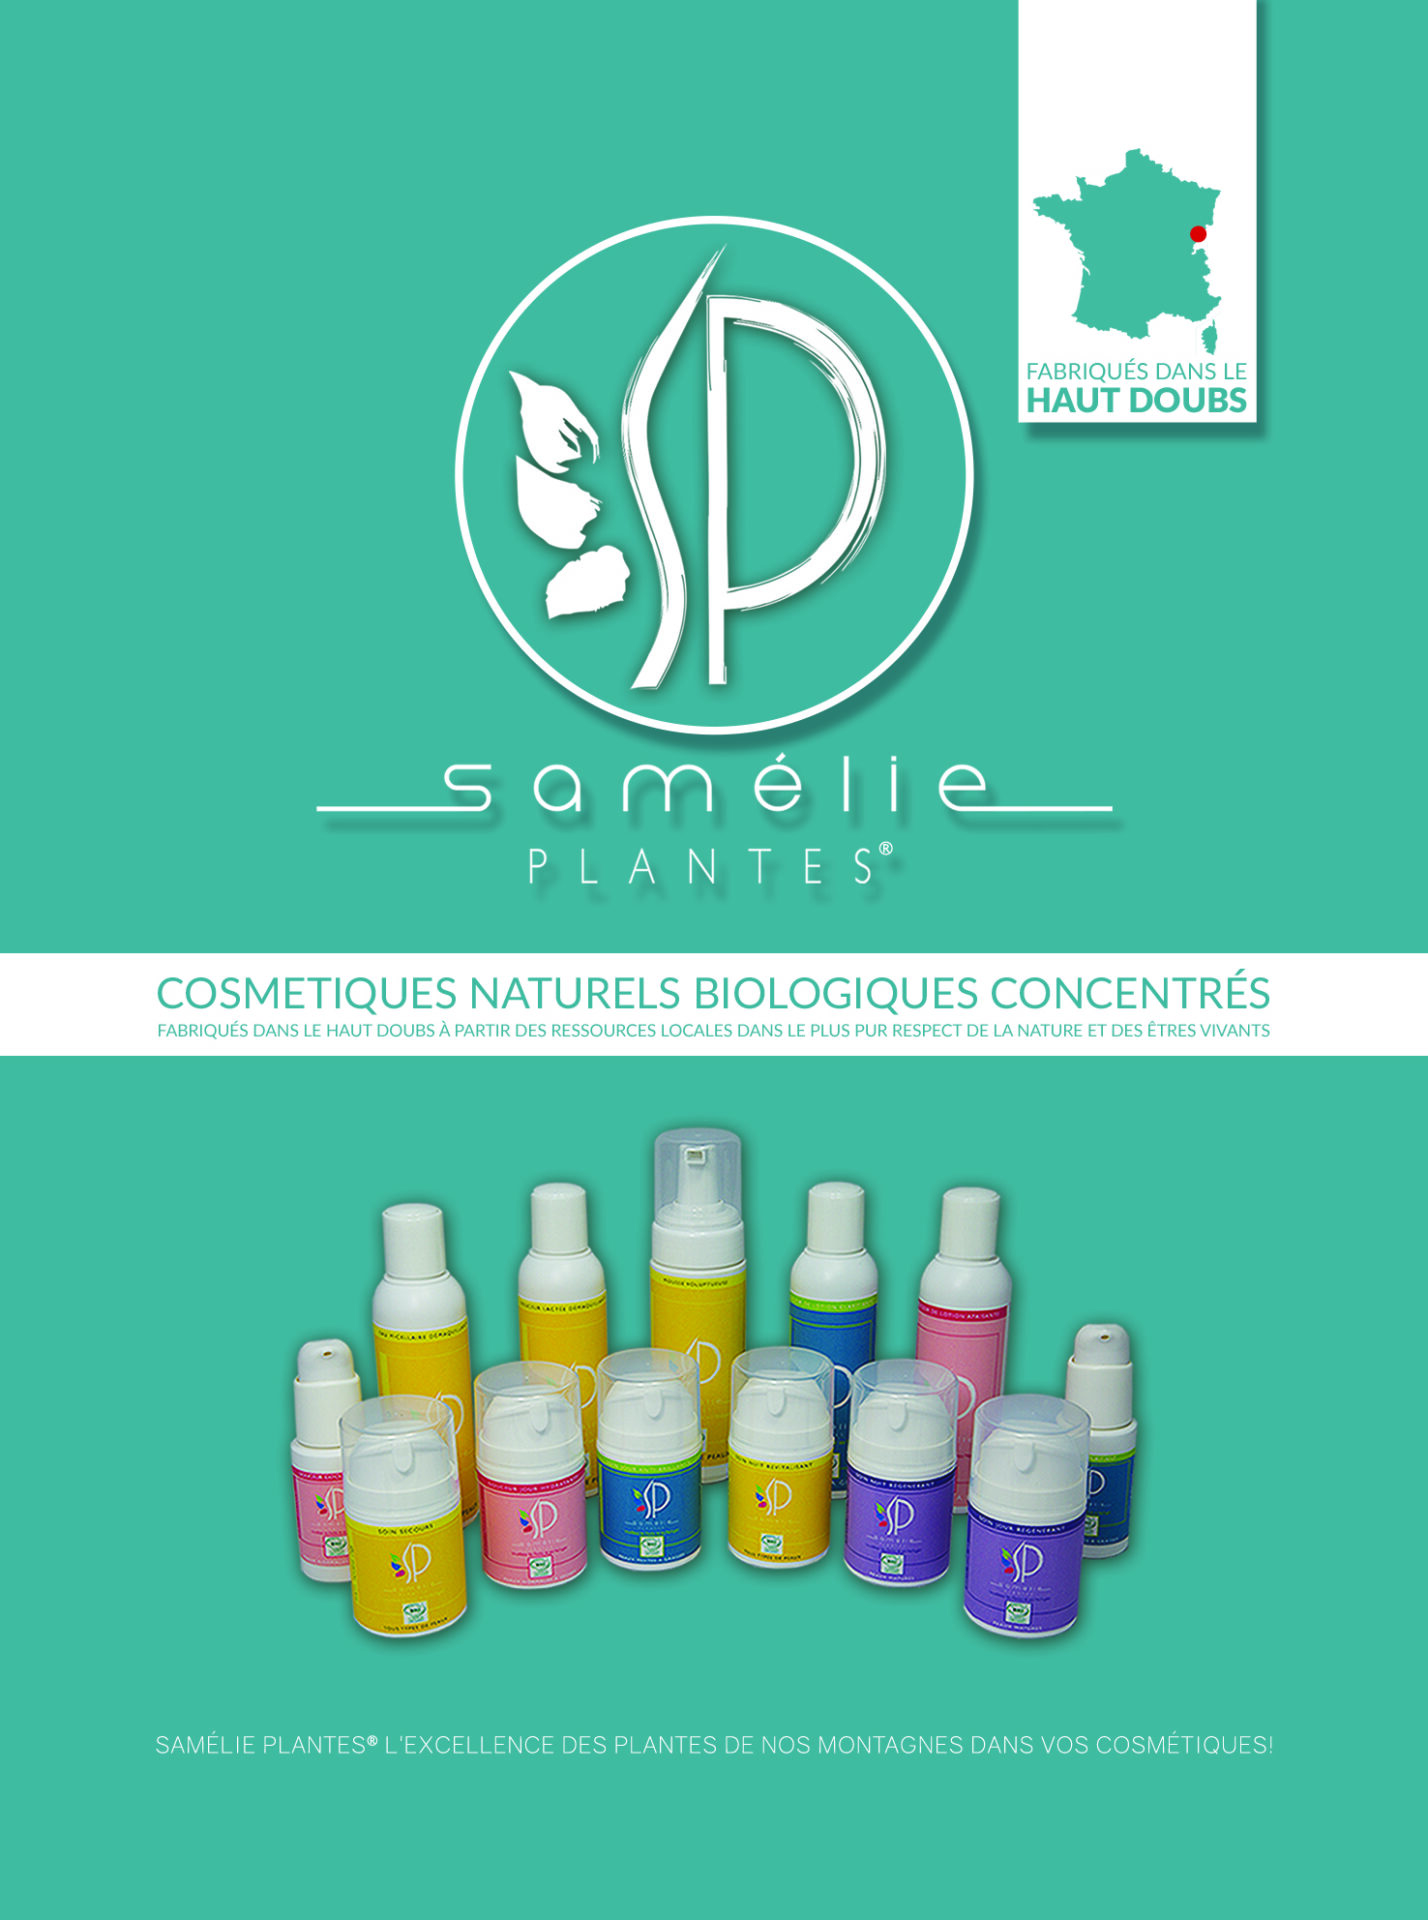 Samelie plantes salon made in france for Salon made in france 2017